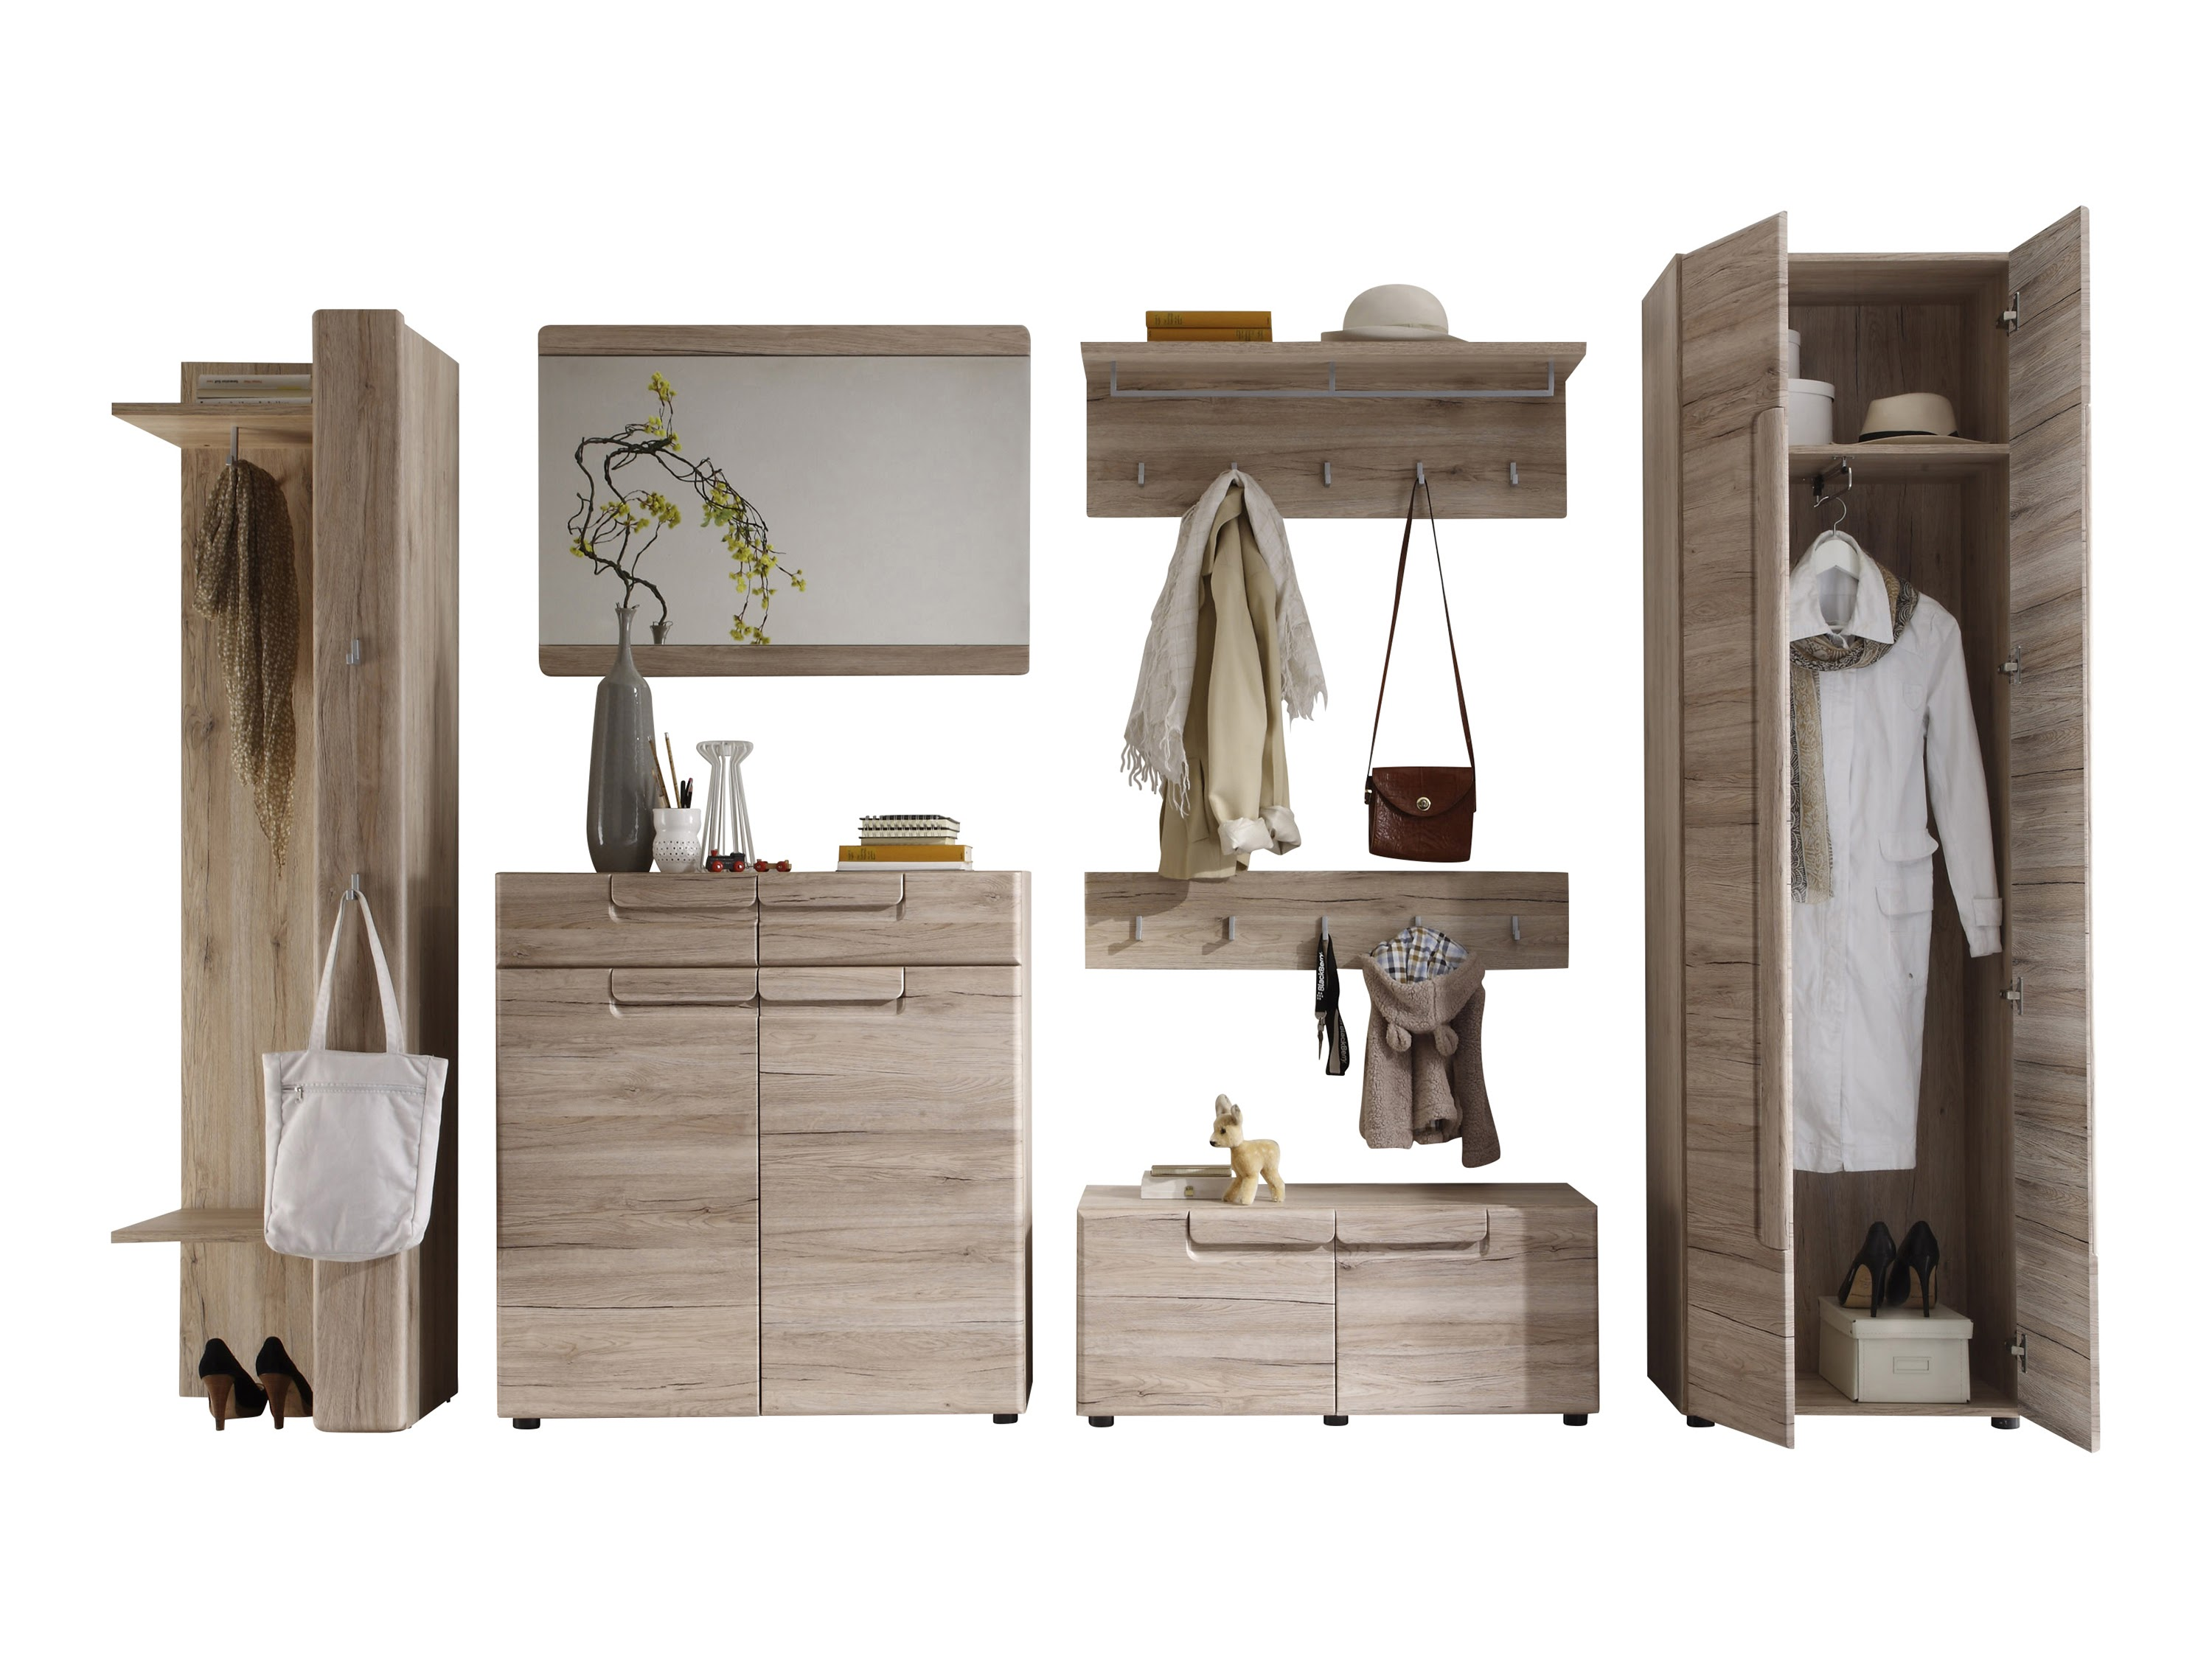 garderobe malea trendteam eiche san remo hell. Black Bedroom Furniture Sets. Home Design Ideas